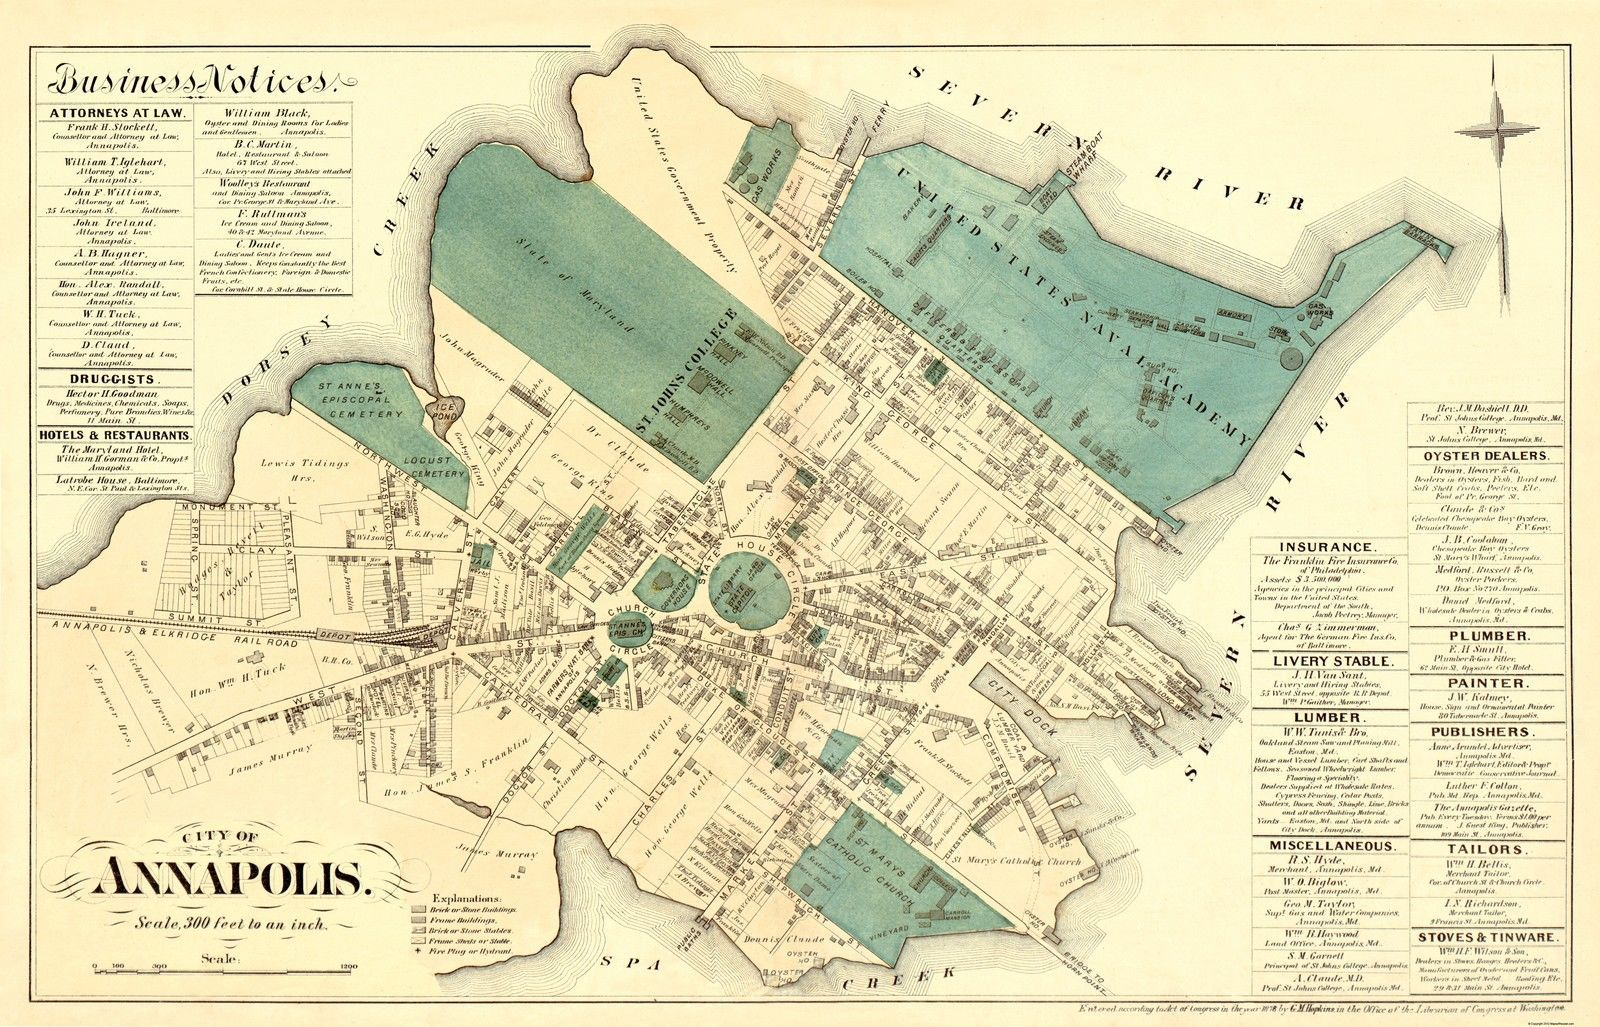 Old City Map - Annapolis Maryland Landowner - 1878 - 35.81 x 23 ...